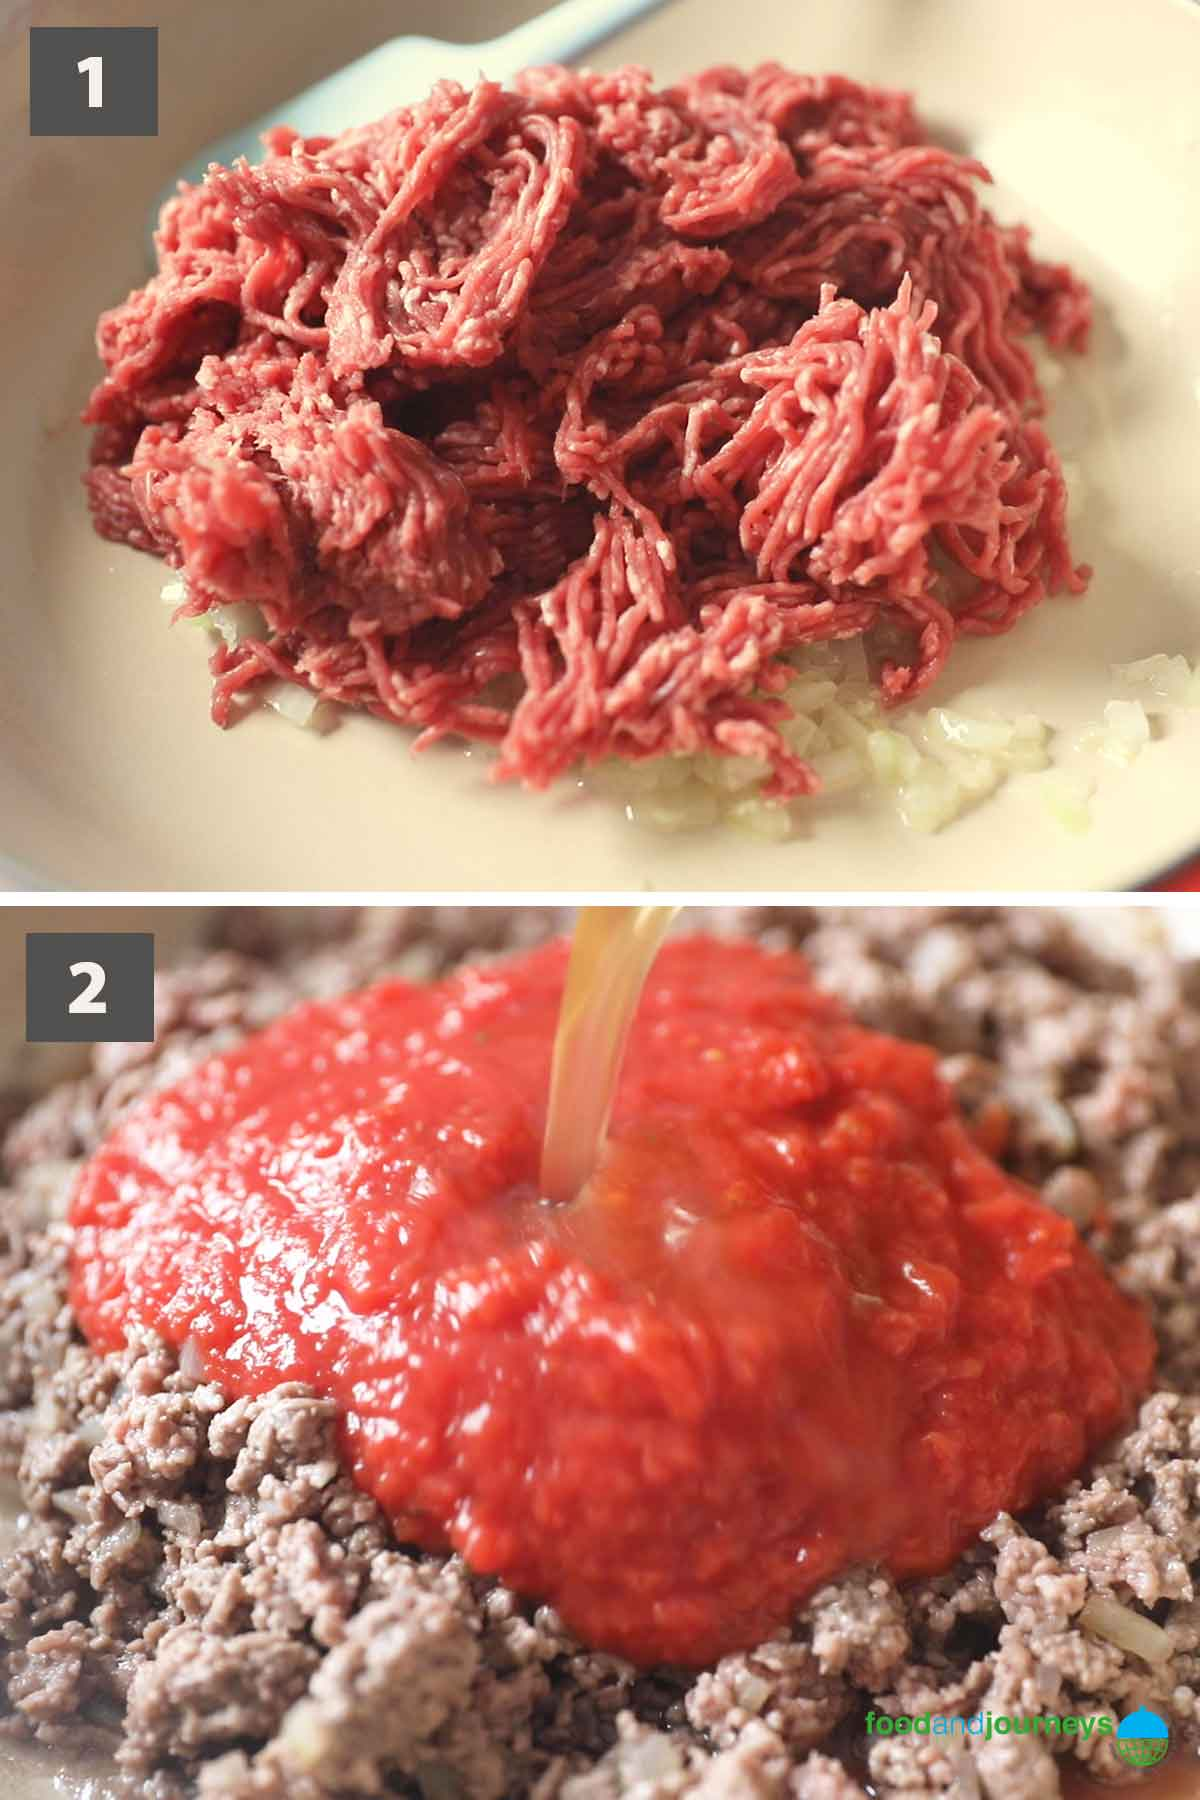 First part of a collage of images showing the step by step process on how to make beef picadillo at home.